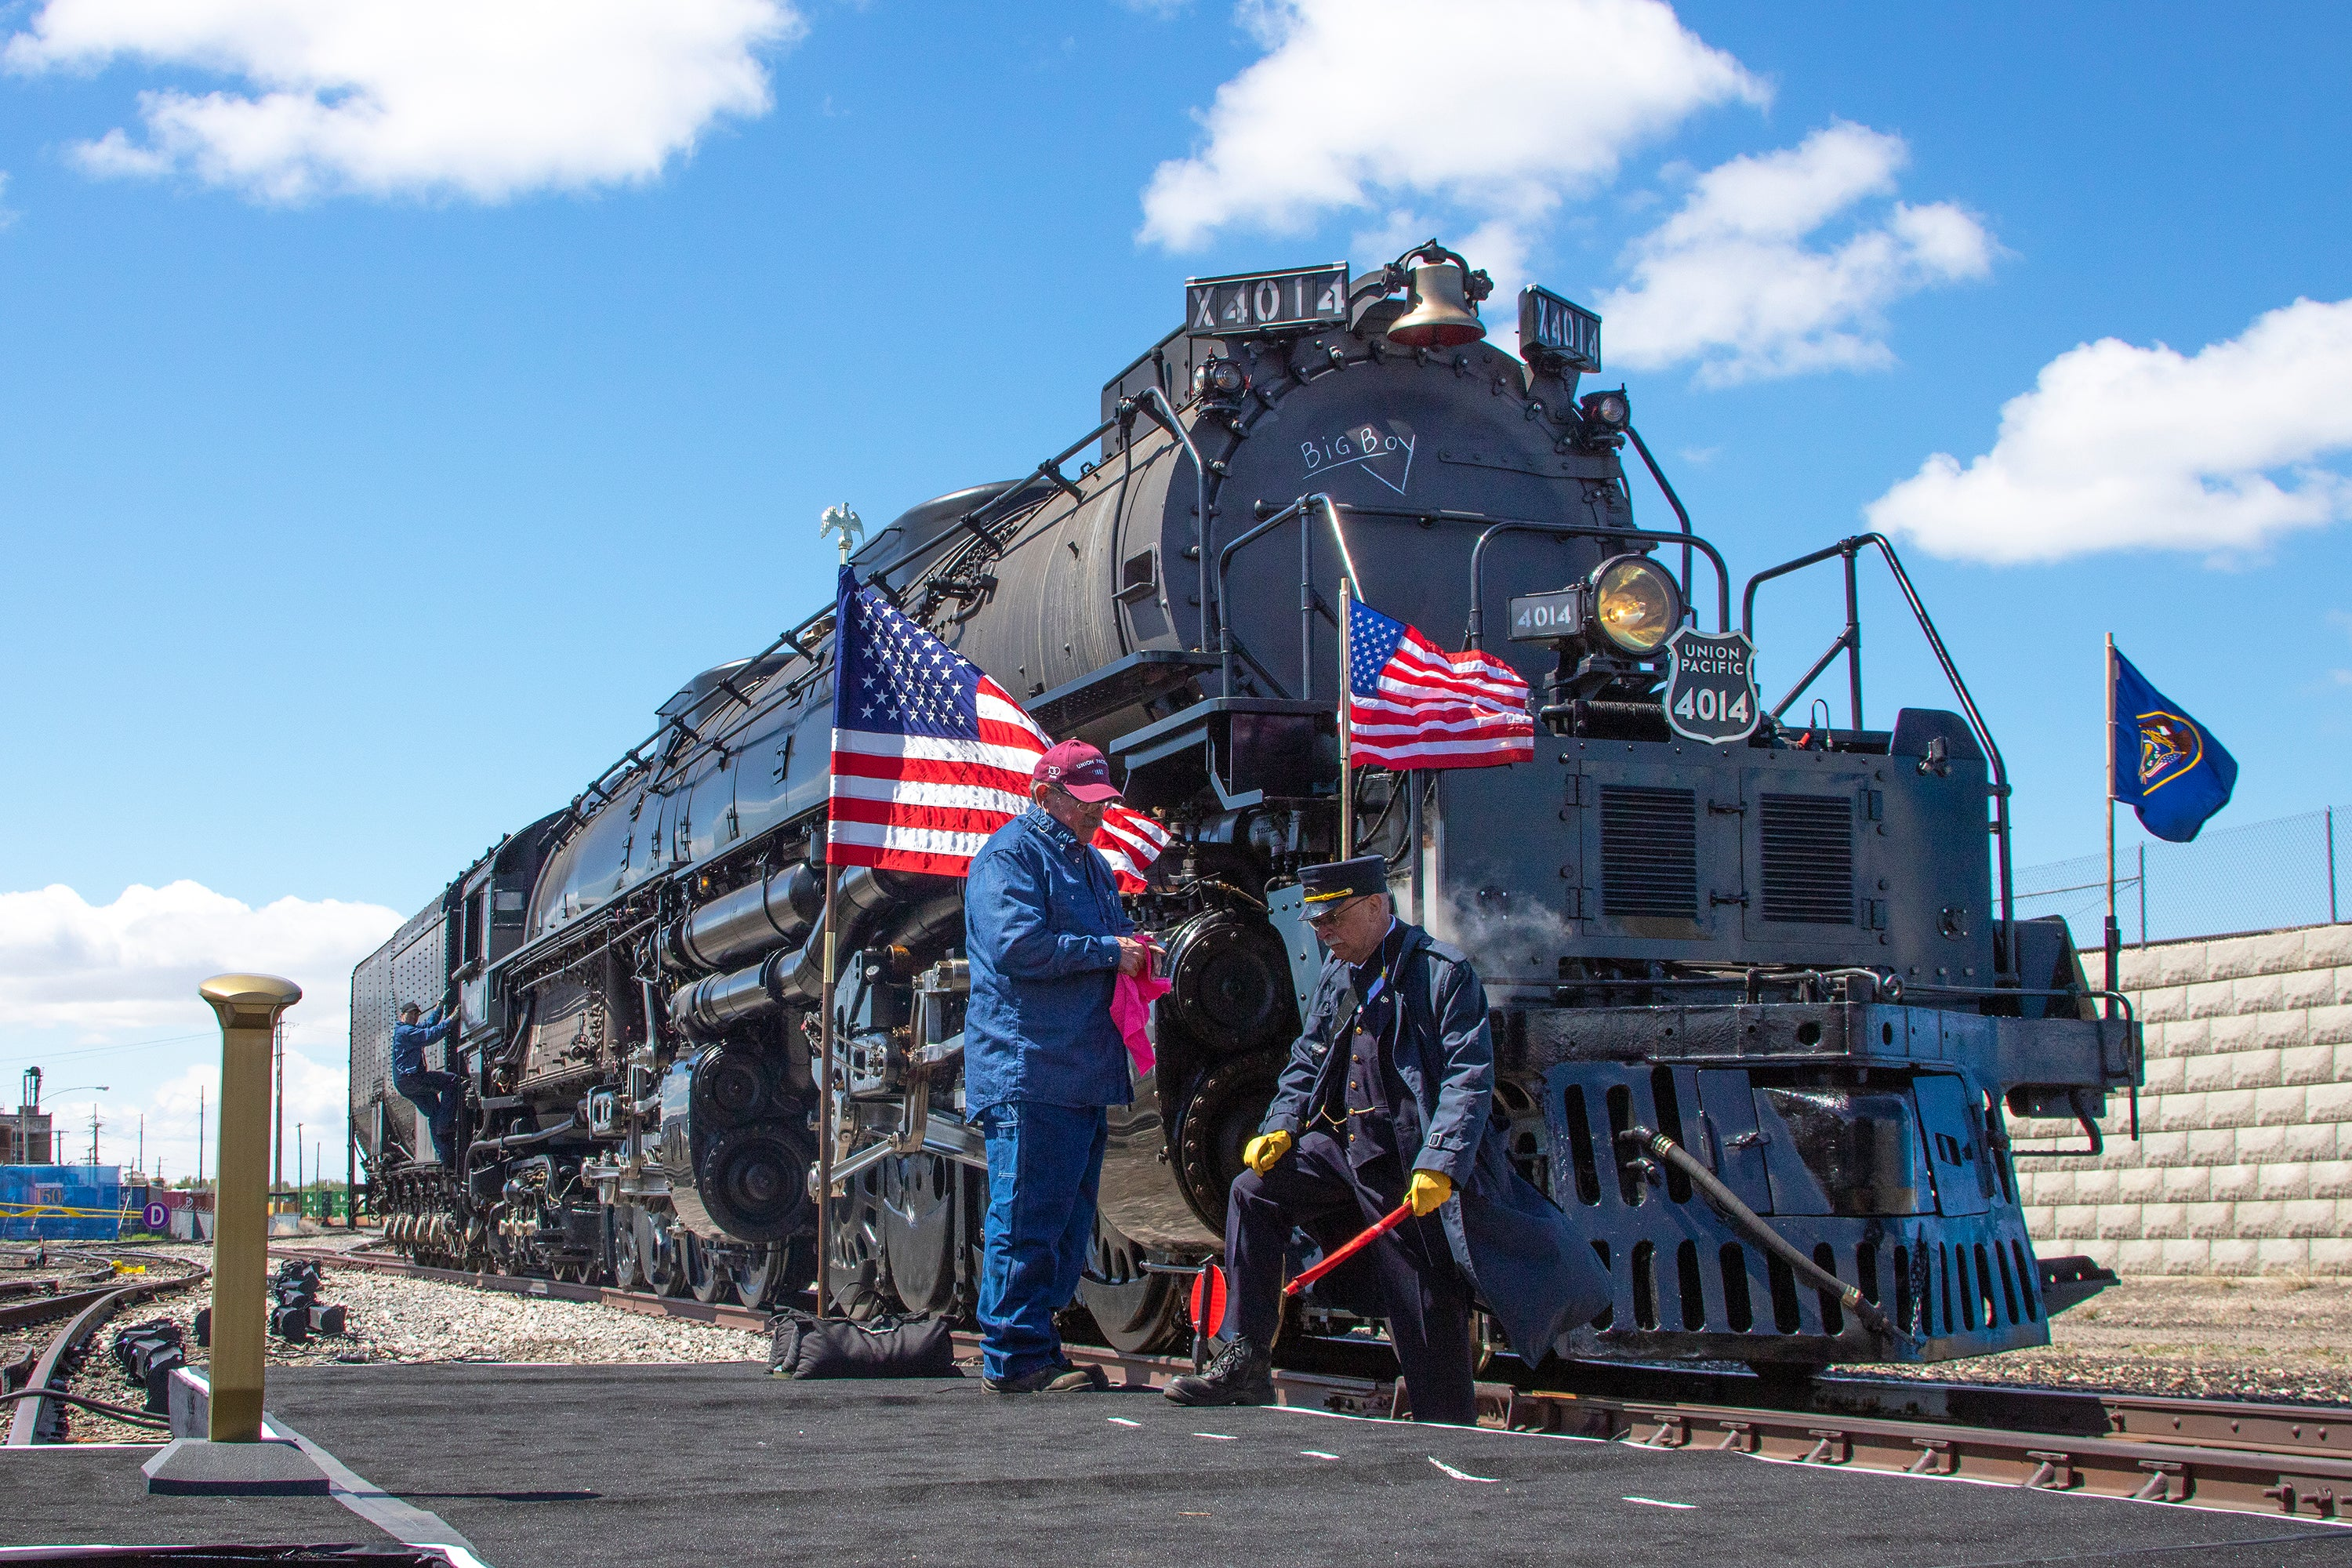 Union Pacific's Big Boy 4014 to visit Provo!